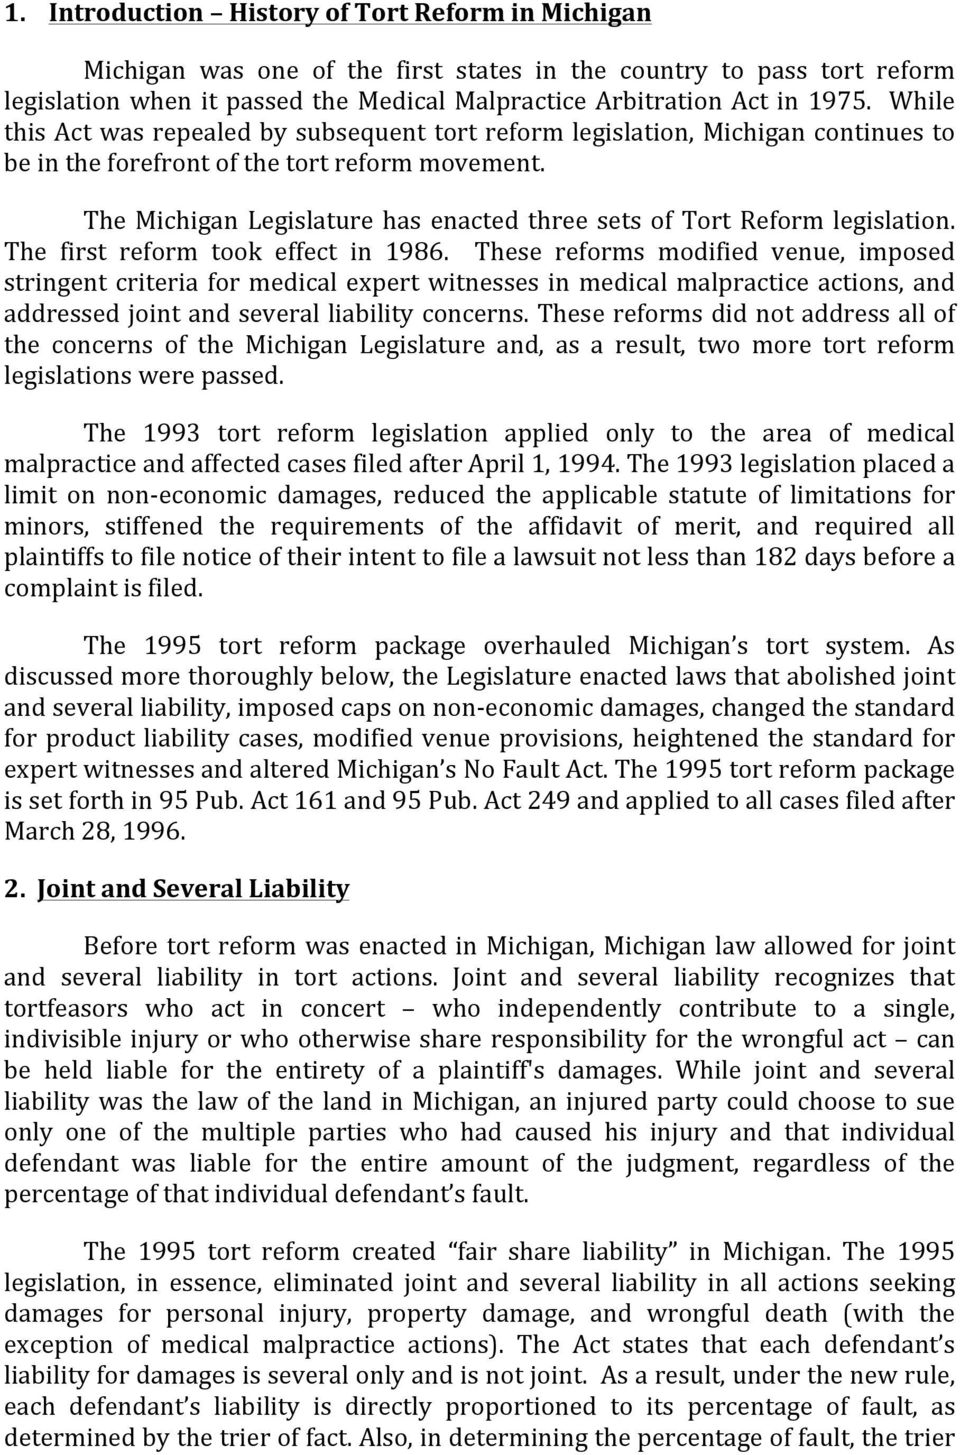 The Michigan Legislature has enacted three sets of Tort Reform legislation. The first reform took effect in 1986.